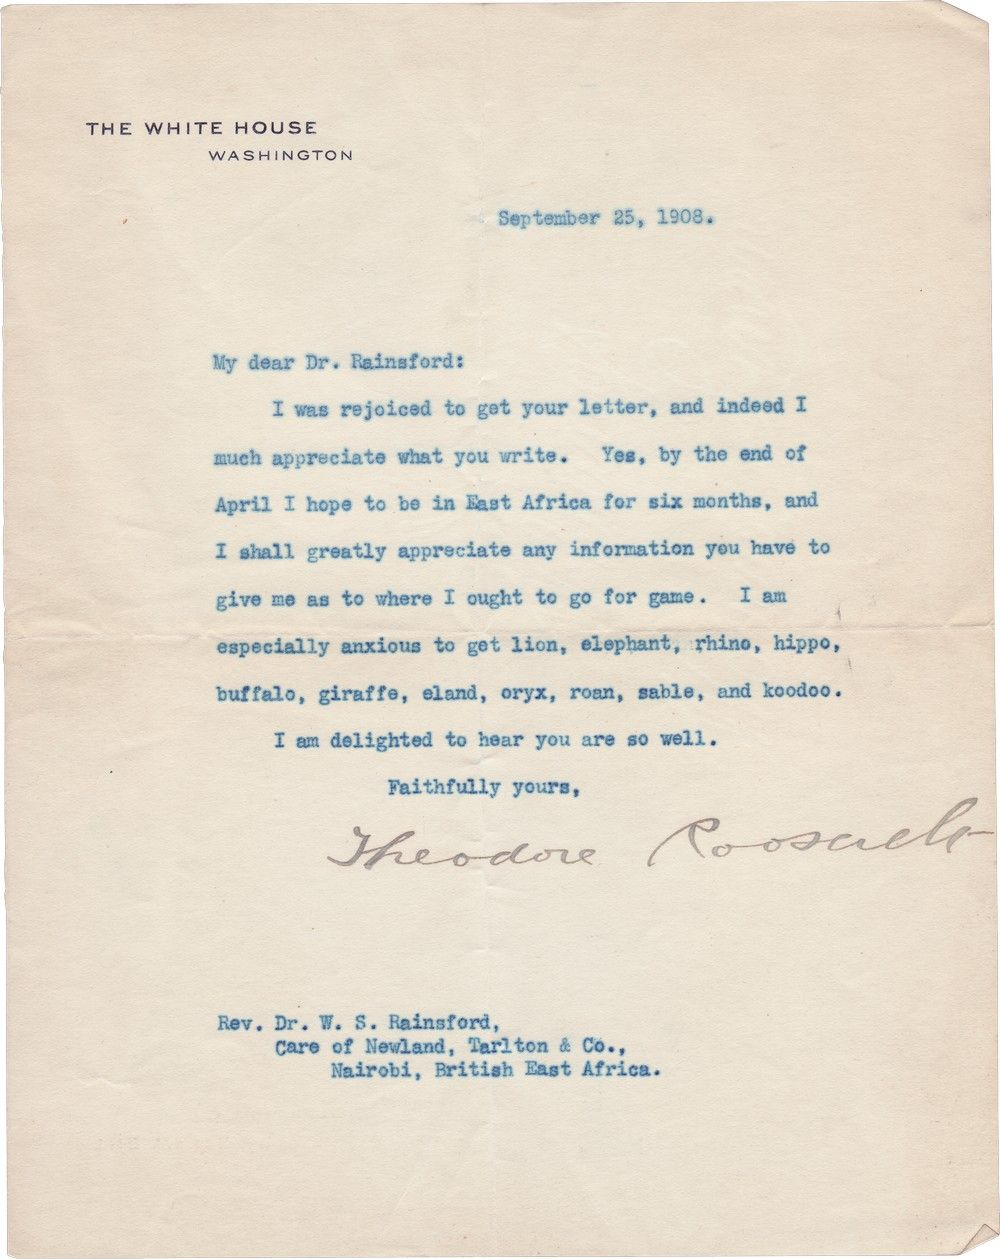 President Theodore Roosevelt Plans for Life After the White House: His African Safari